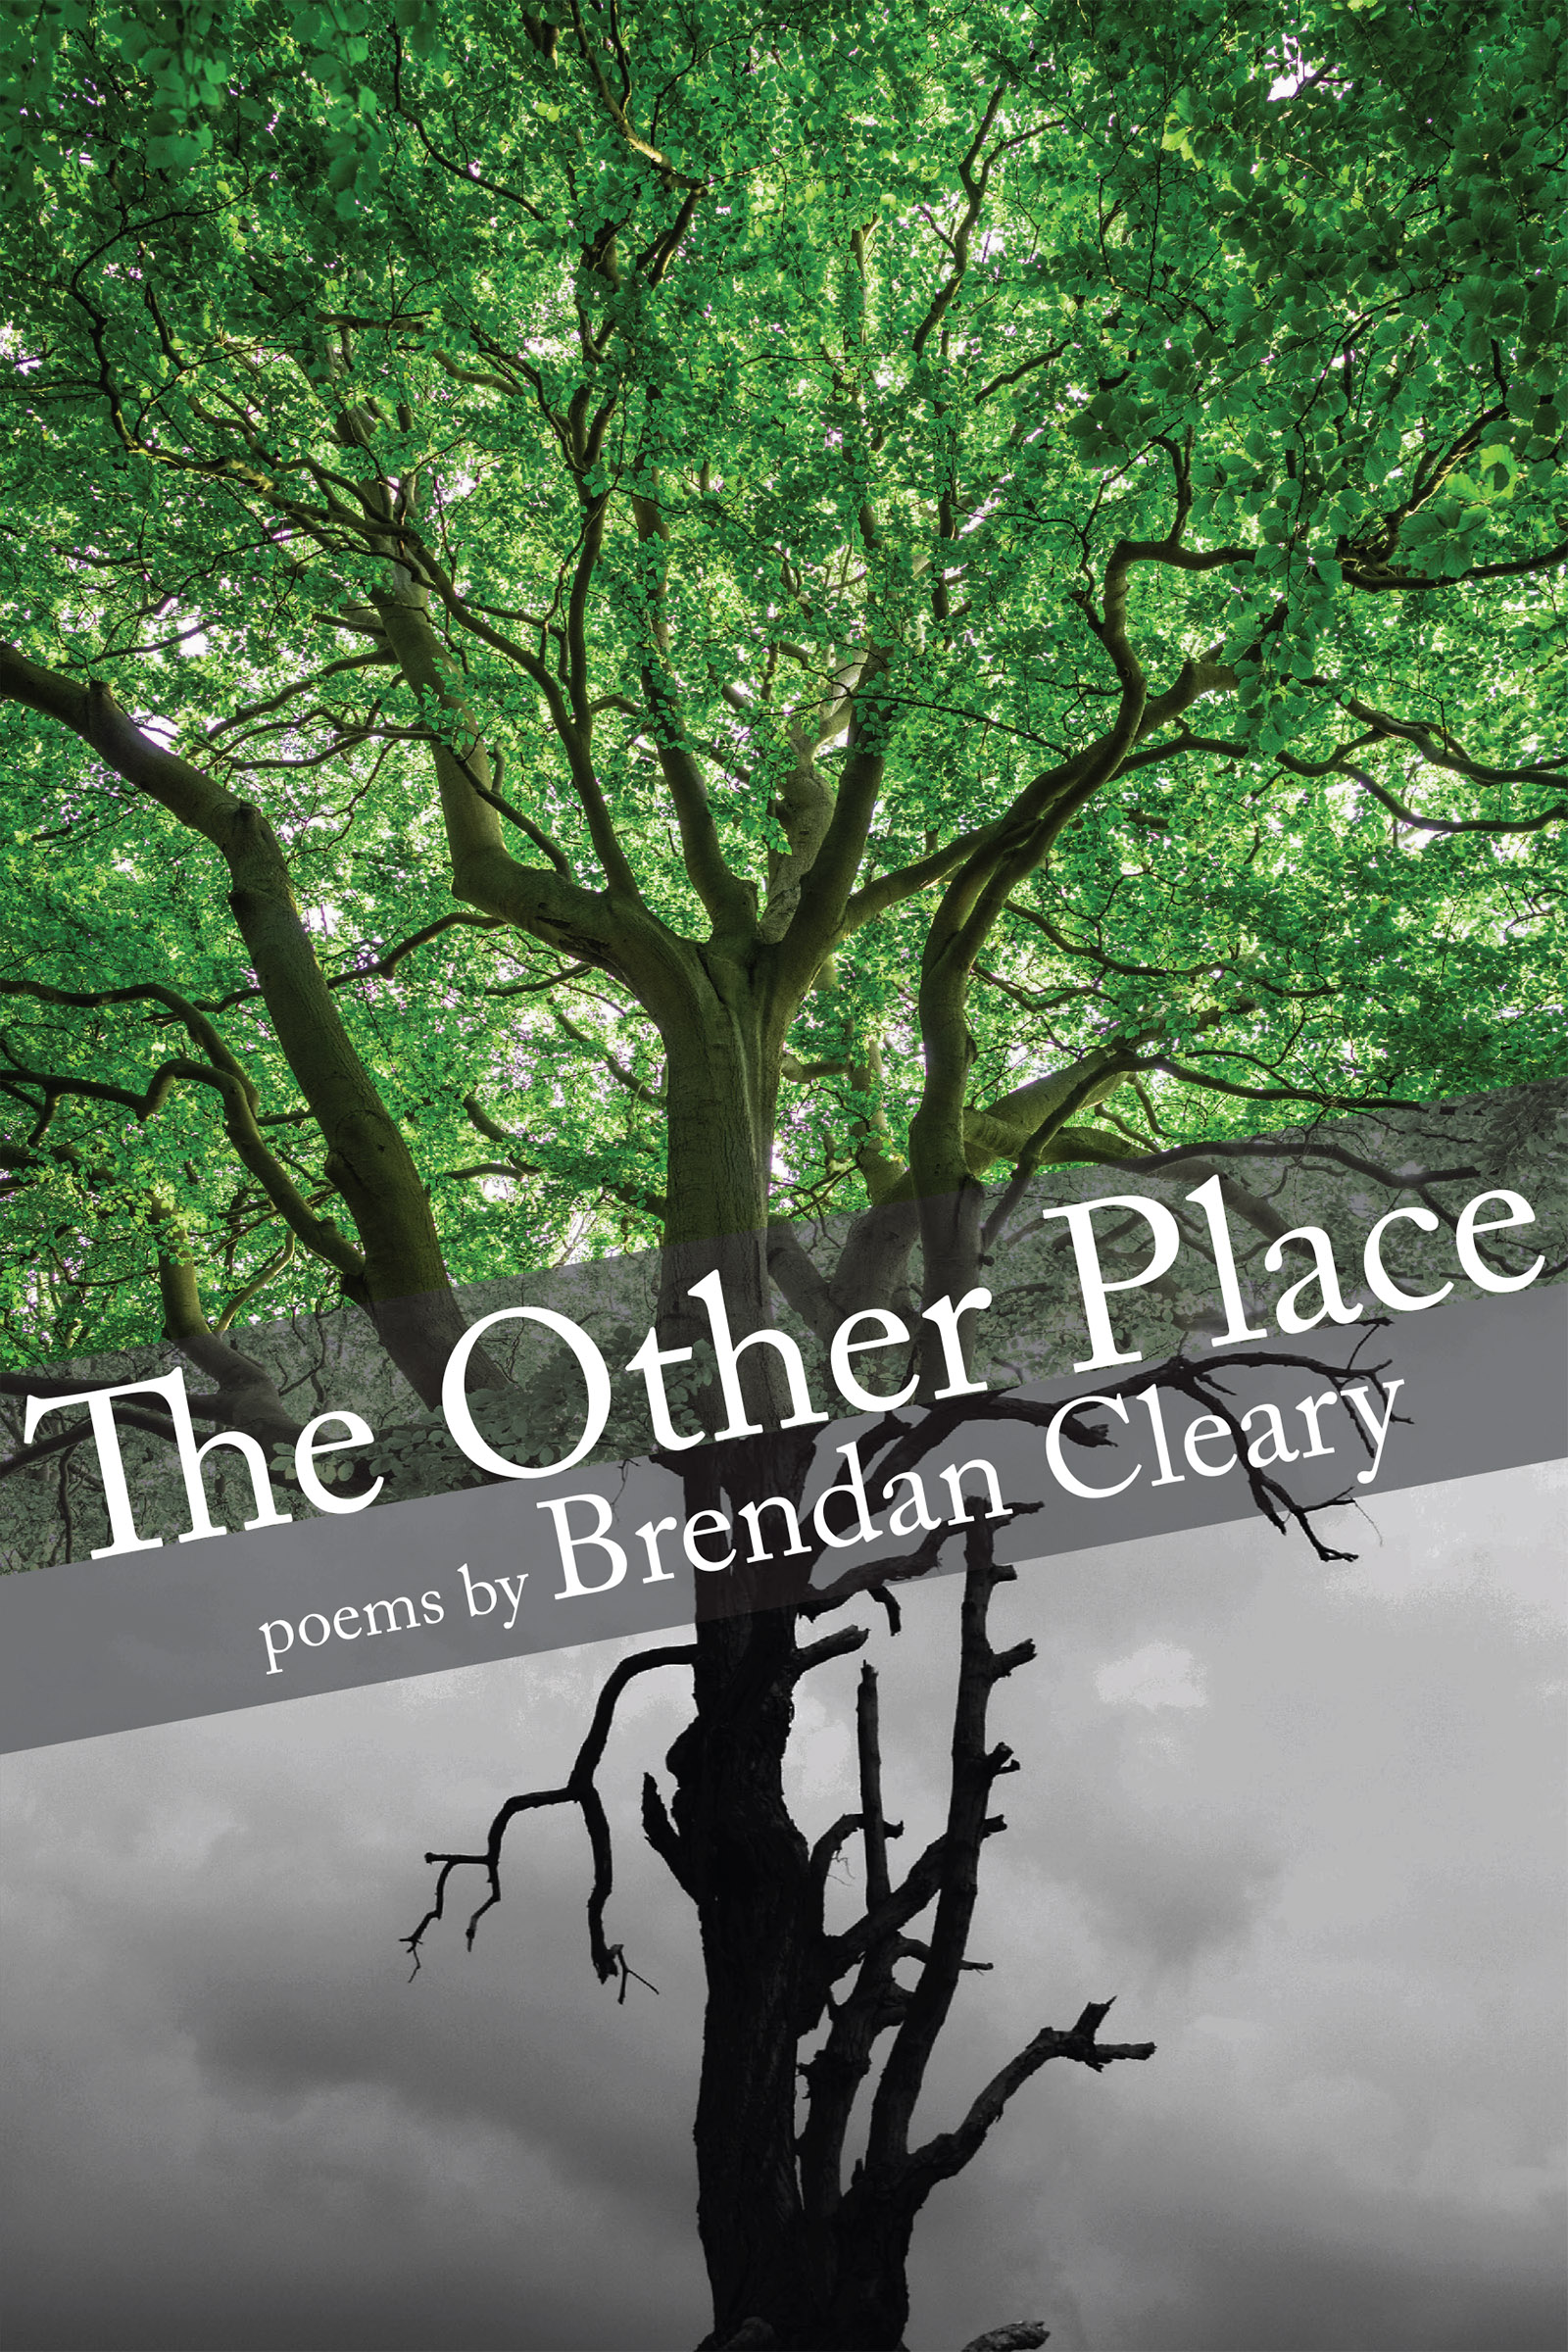 White script text that reads The Other Place poems by Brendan Cleary over an image of a tree half in color and half in black and white.